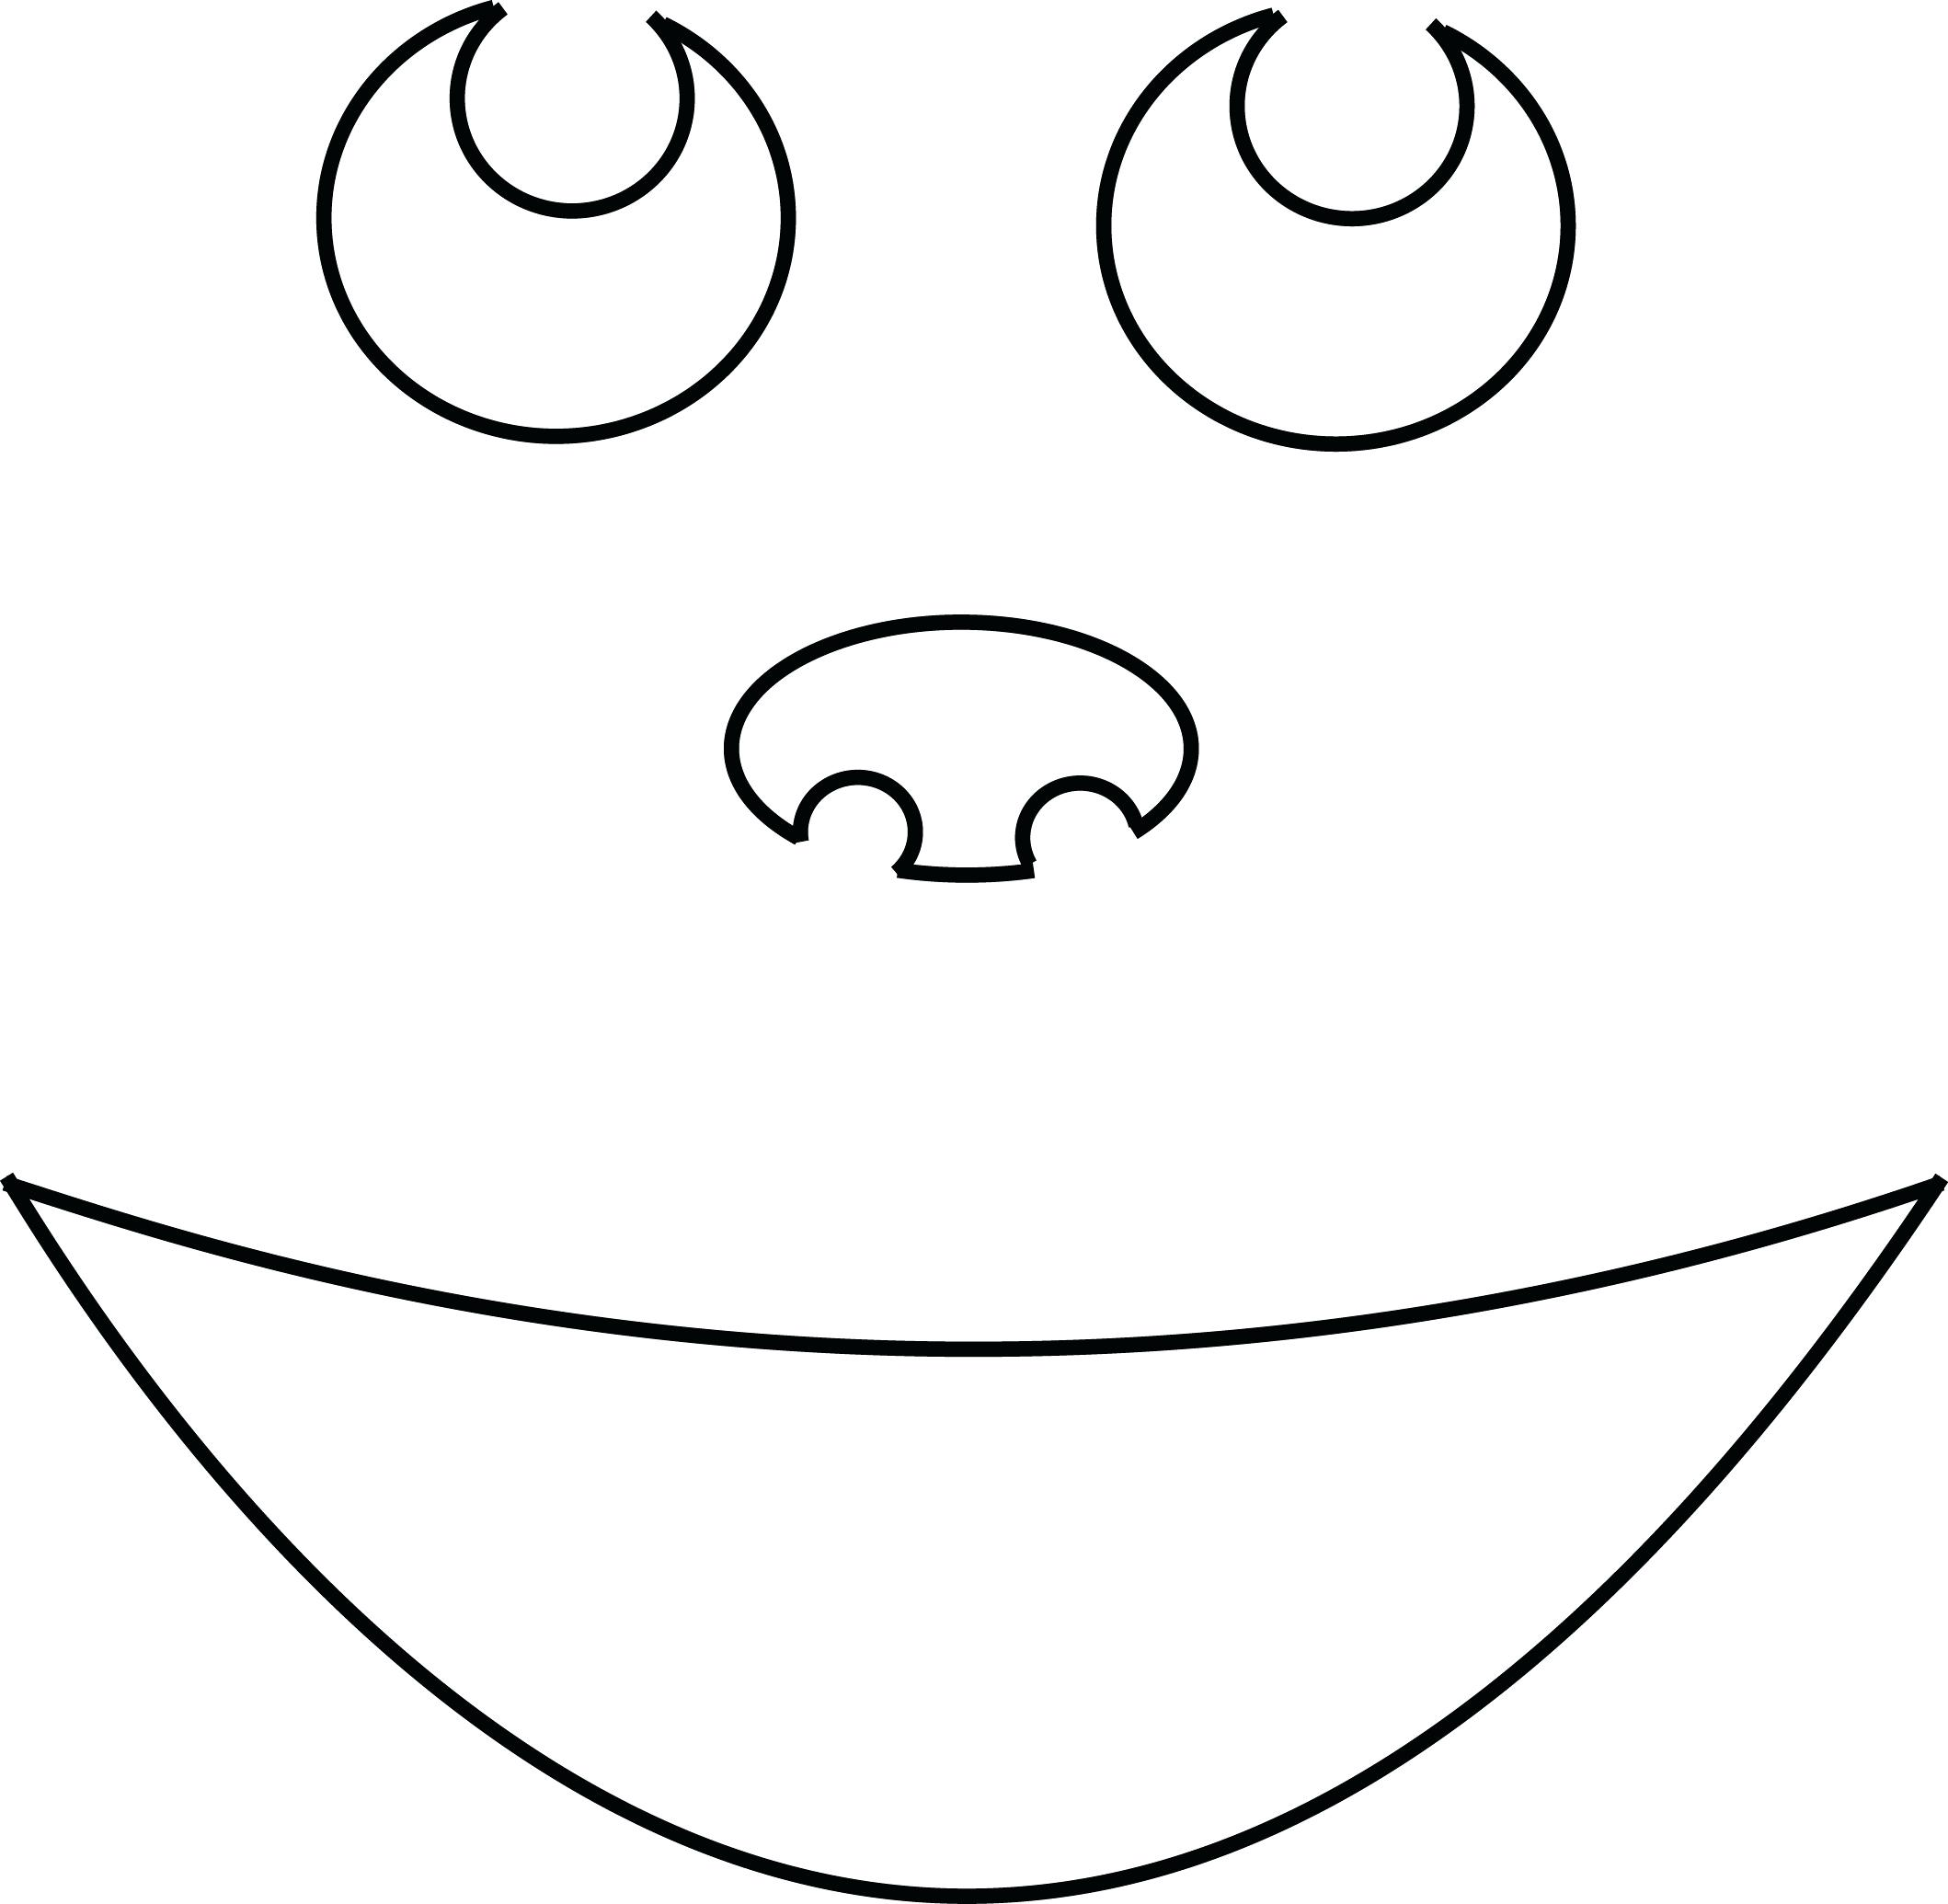 2118x2070 Vector Of A Cartoon Nearly Flat Pumpkin Coloring Page Outline 64